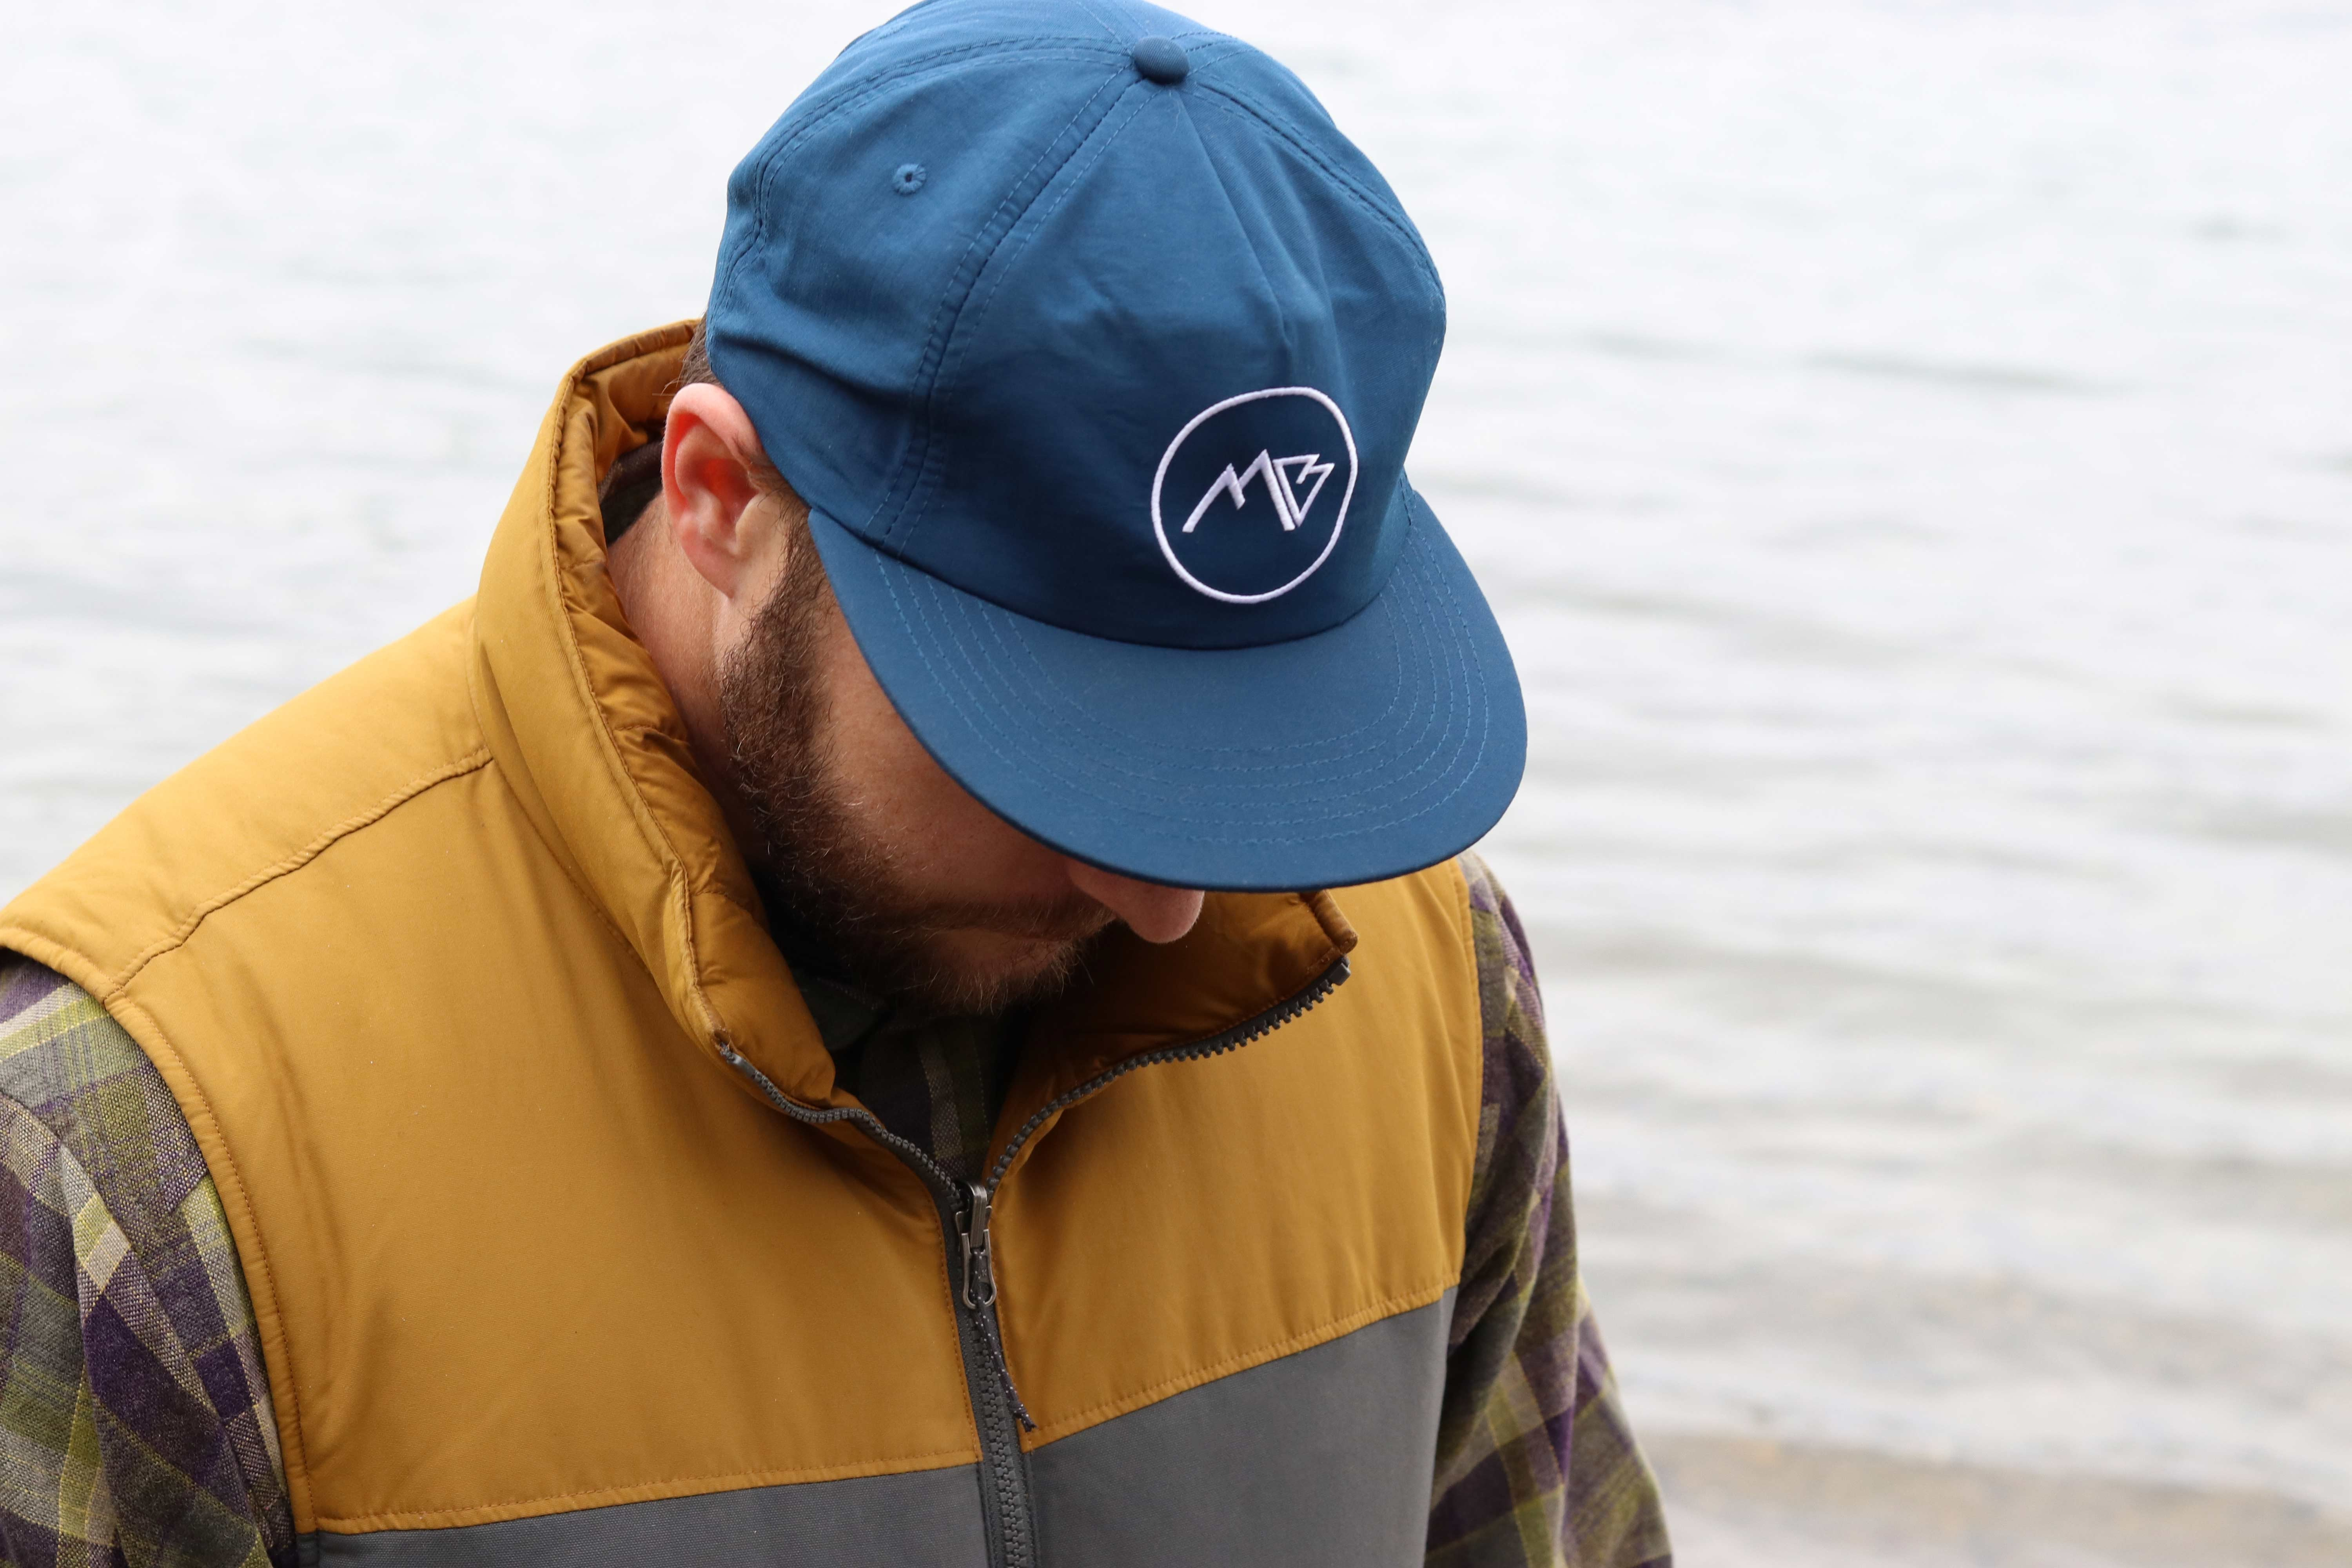 man wearing vest and cap looking down beside body of water